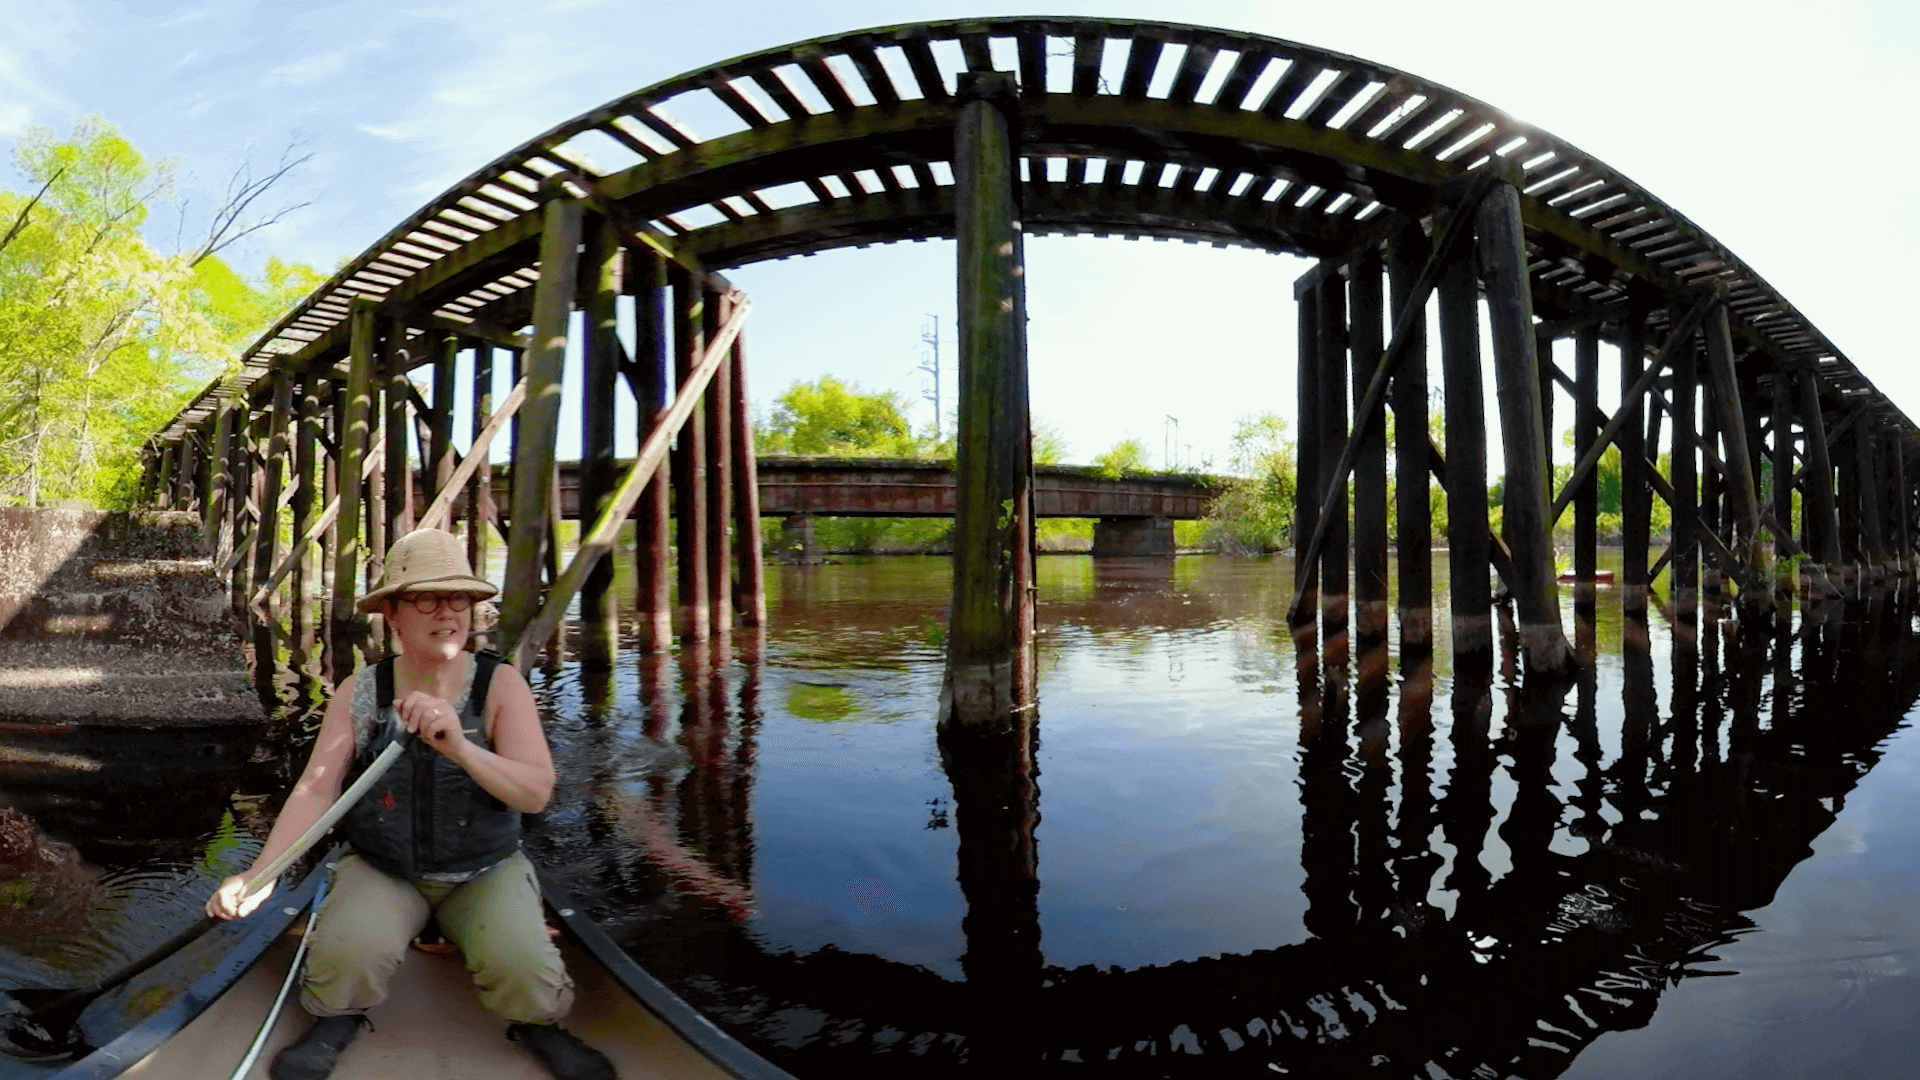 360 photo of a woman paddling in a canoe on the concord river by a bridge